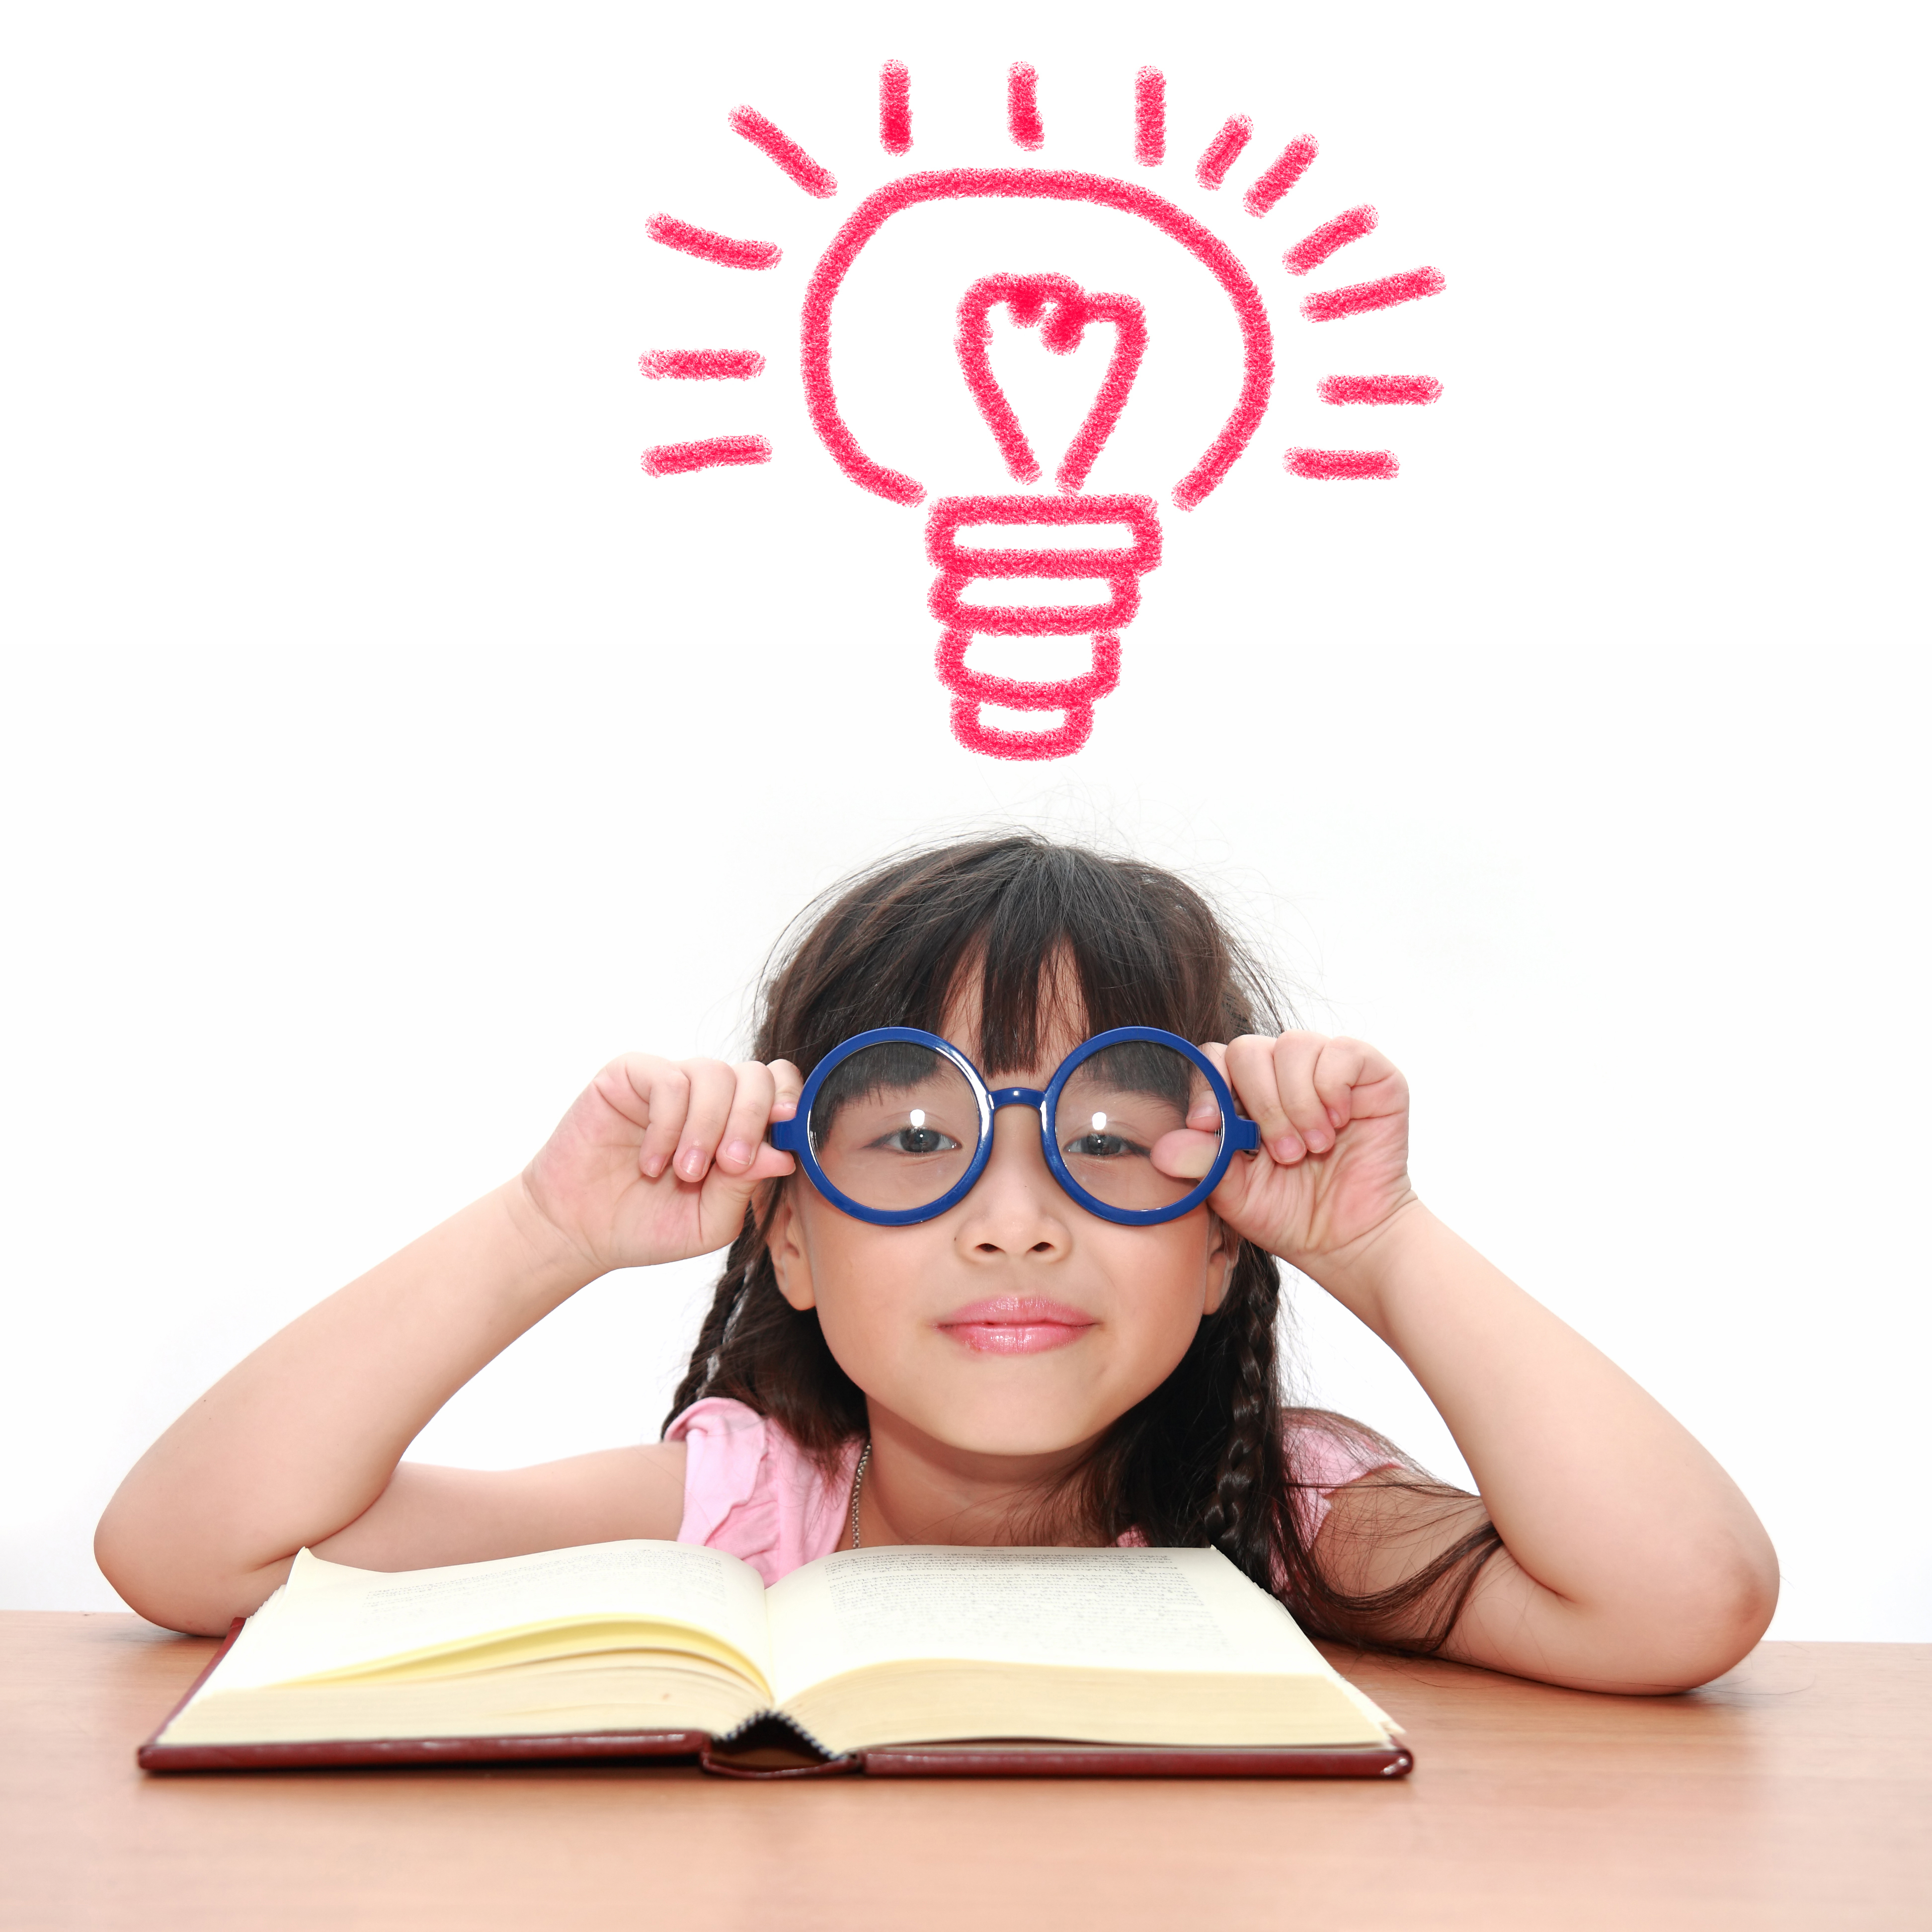 A girl with glasses reading a book with a drawn lighbulb over her head